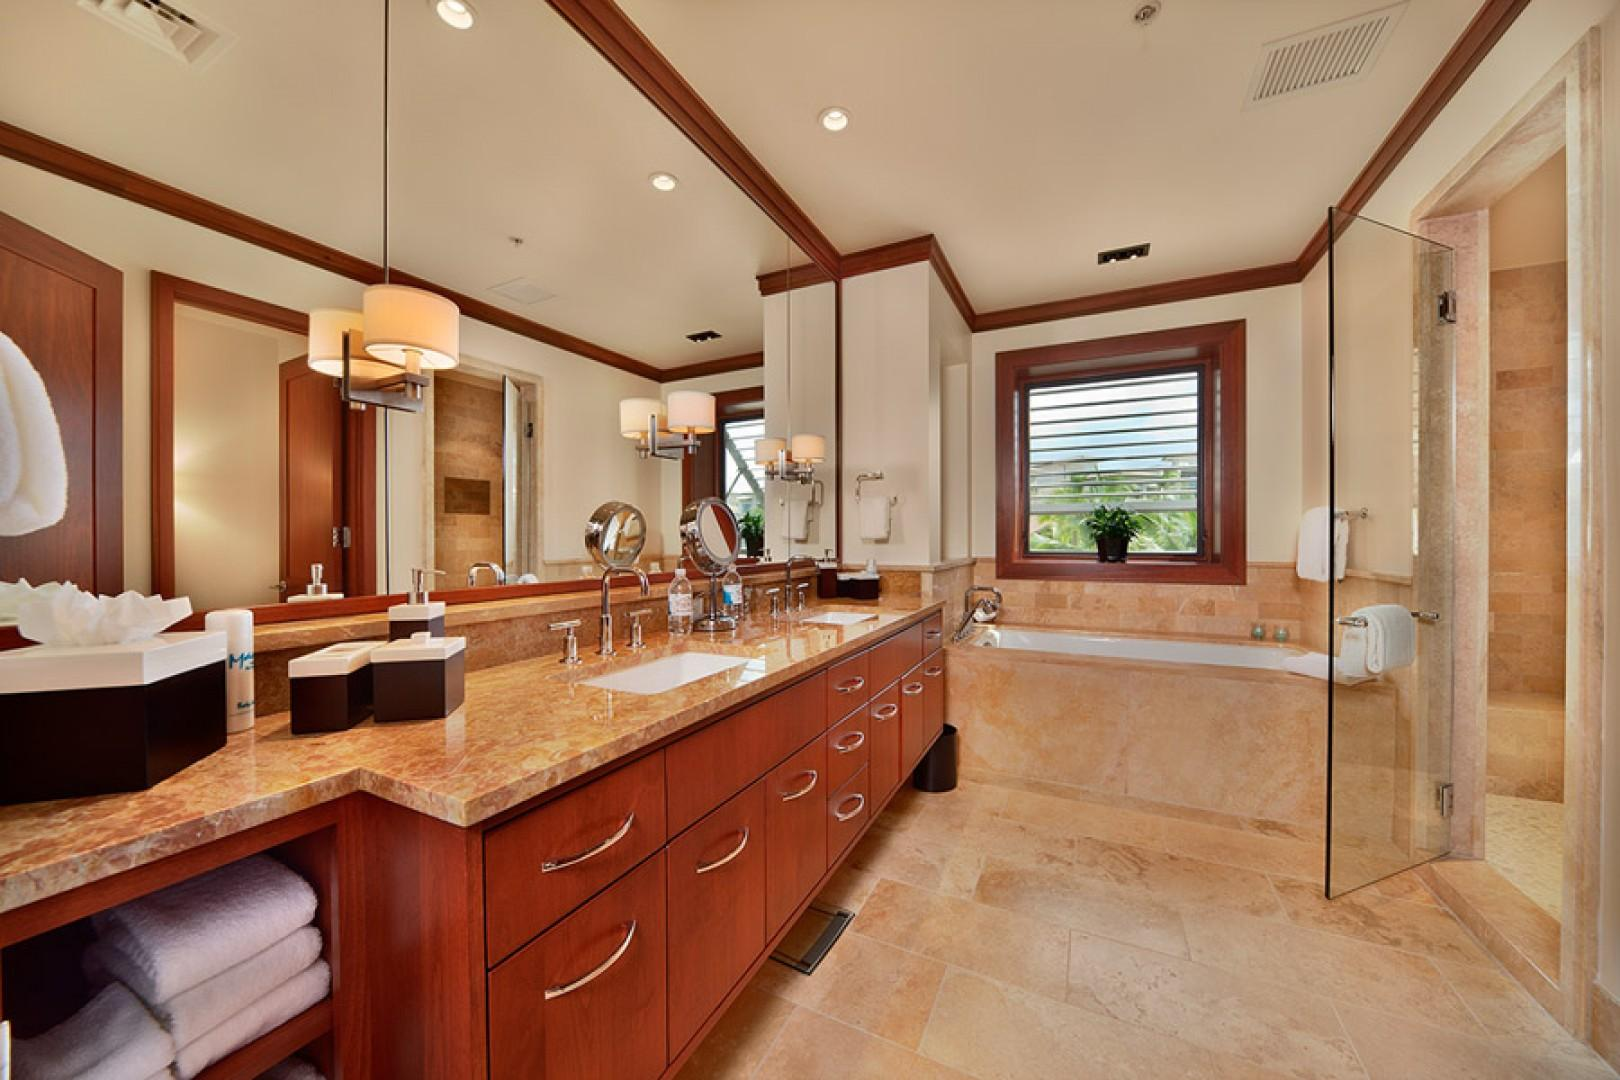 Sea Mist Villa 2403 - Second Master Bath with Deep Tub, Robes, Private WC, Walk-in Shower, Dual Vanities, Scale, Make up mirror, Hair Dryer